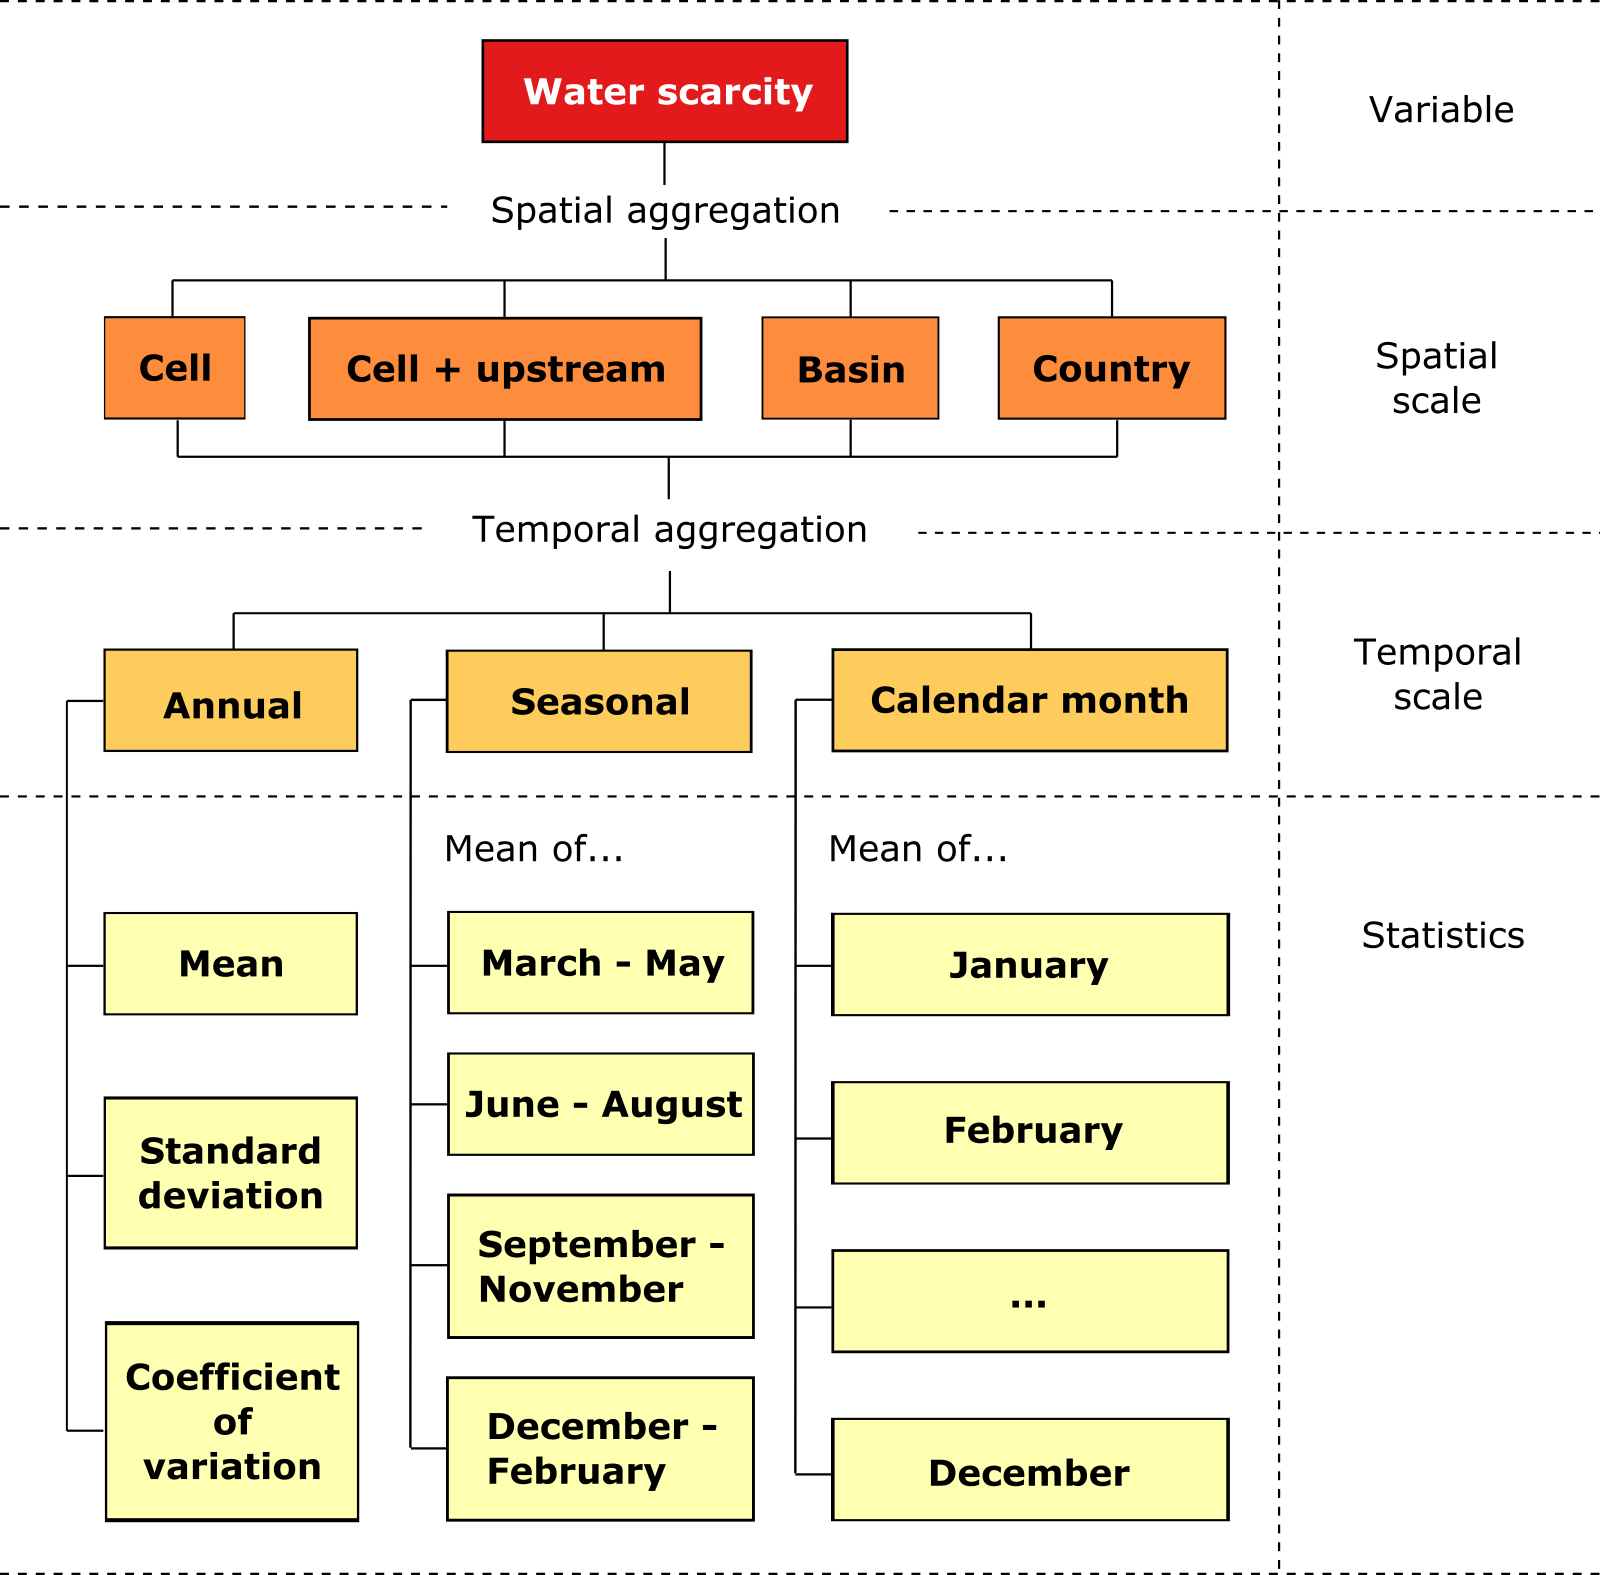 Figure 2: Generation of hydrological hazard indicators based on a hydrological variable. As an example, this scheme shows the hazard indicators related to the water scarcity hydrological variable. By default, the indicators are calculated at the scale of individual grid cells in the CO-MICC Data Portal. However, there is also the option of calculating them over larger areas, namely the cell's upstream area, over pre-defined large basins (e.g., Amazon, Rhine) or over countries.